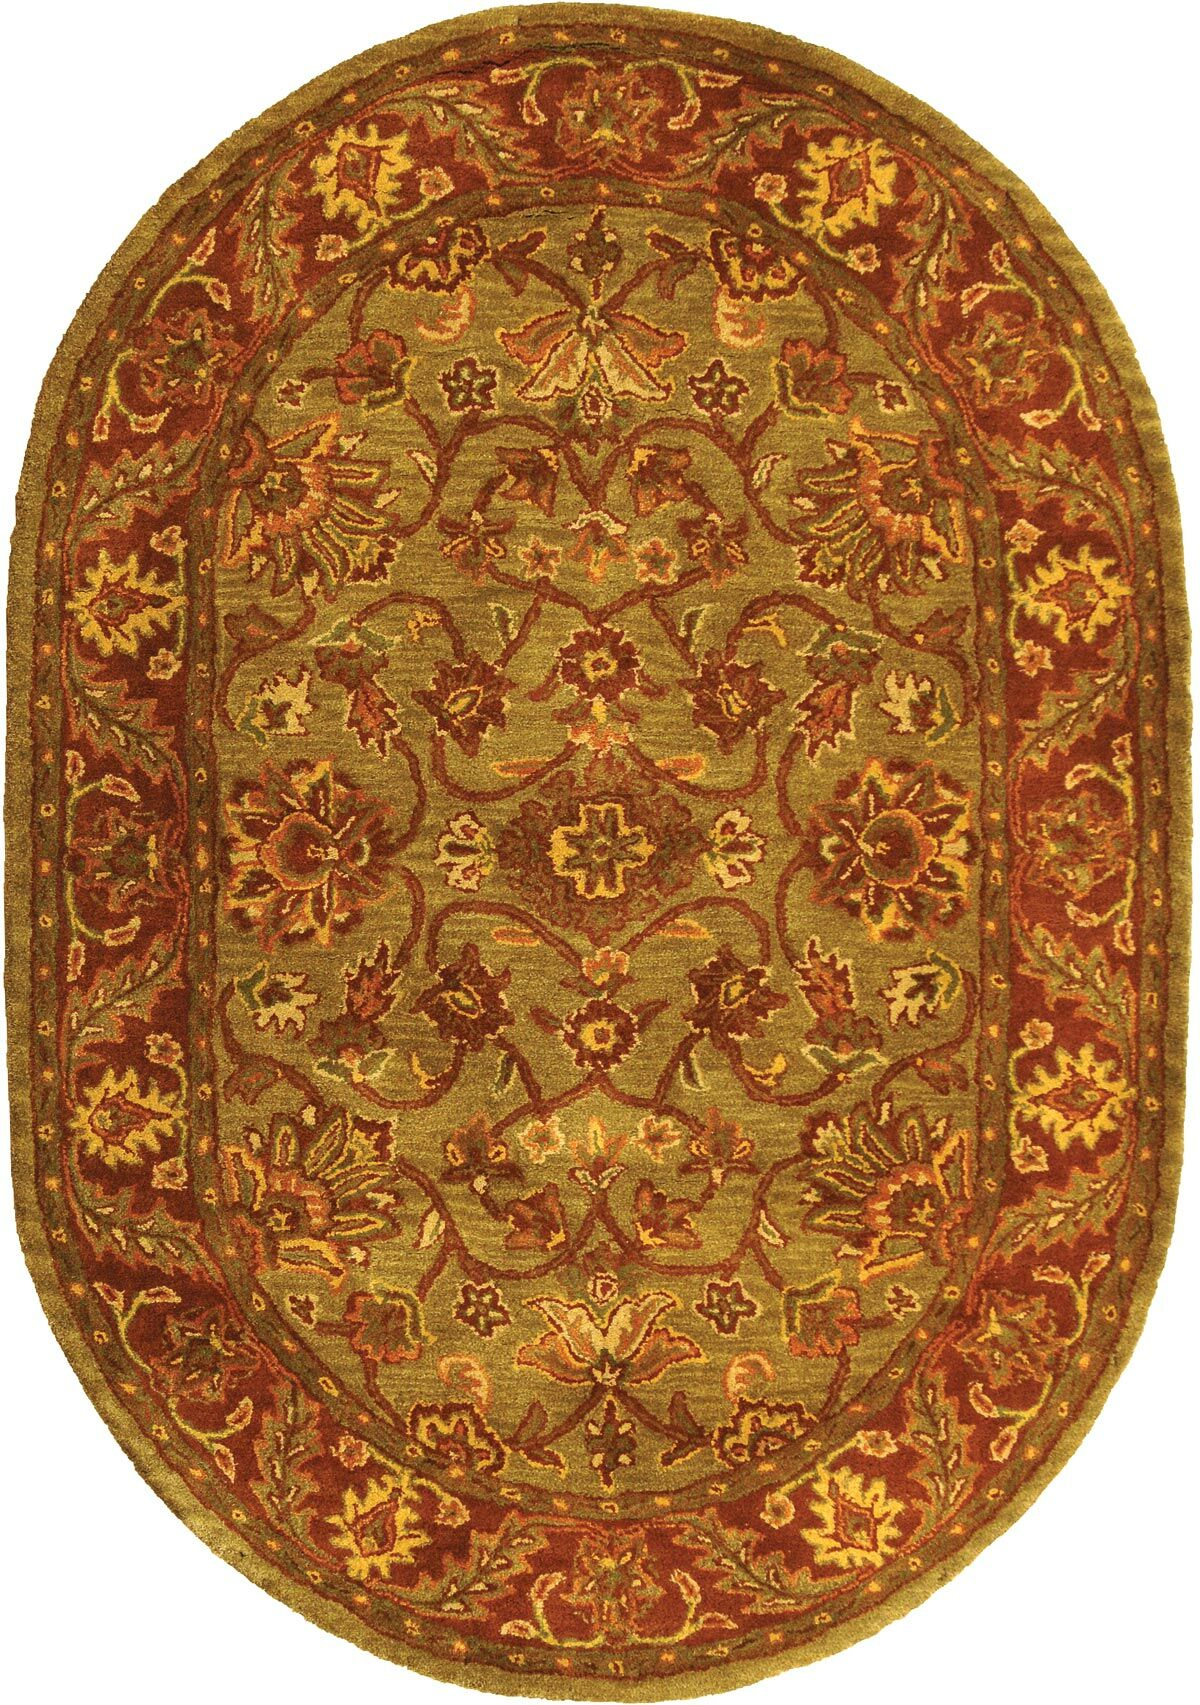 Jaipur Hand-Tufted Wool Green/Rust Area Rug Rug Size: Oval 4'6